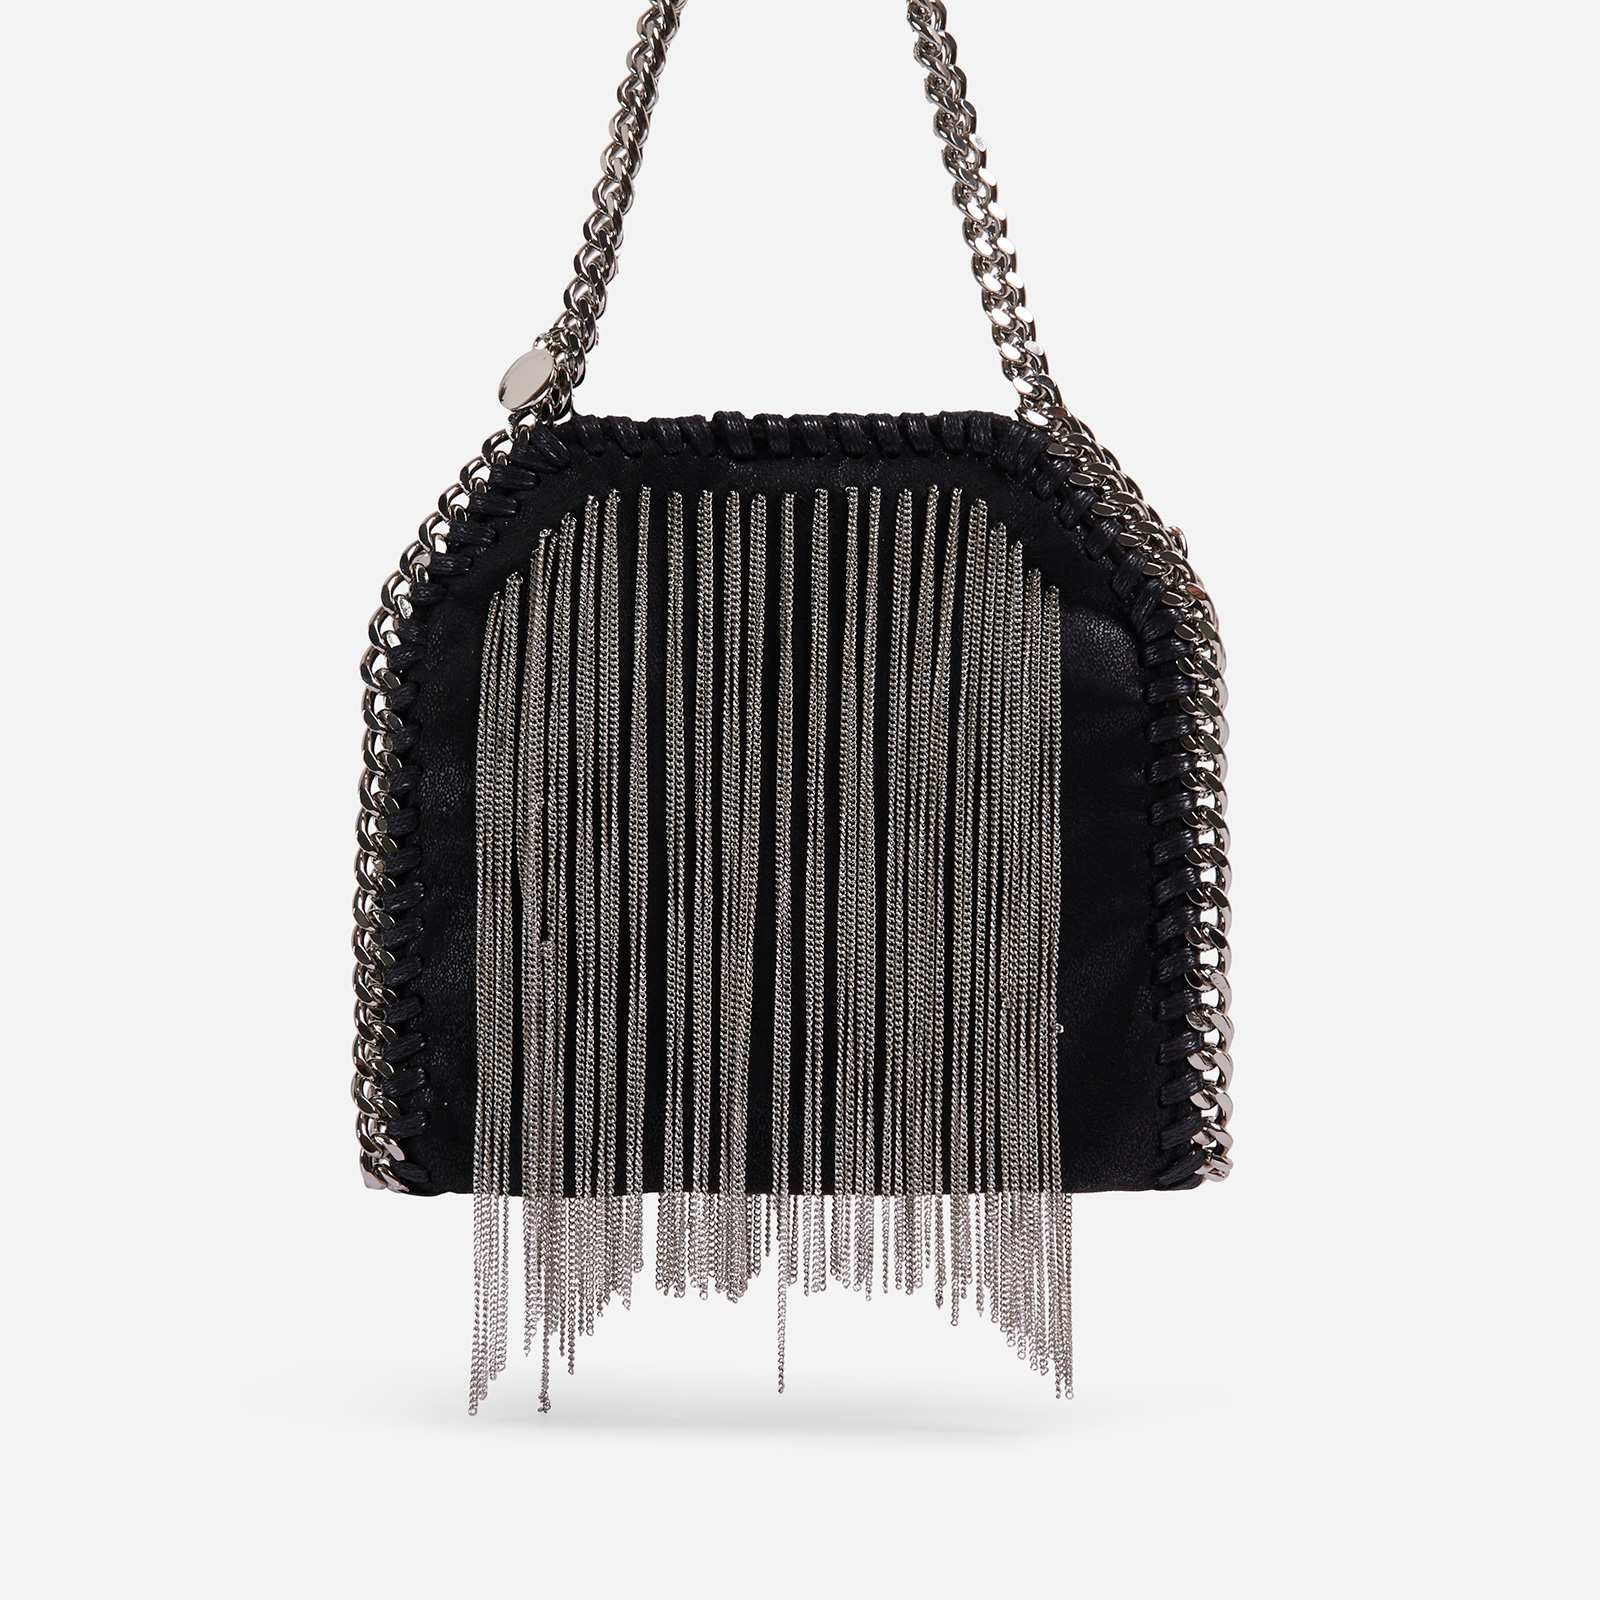 Jessi Silver Tassel Detail Chain Strap Shoulder Bag In Black Faux Leather